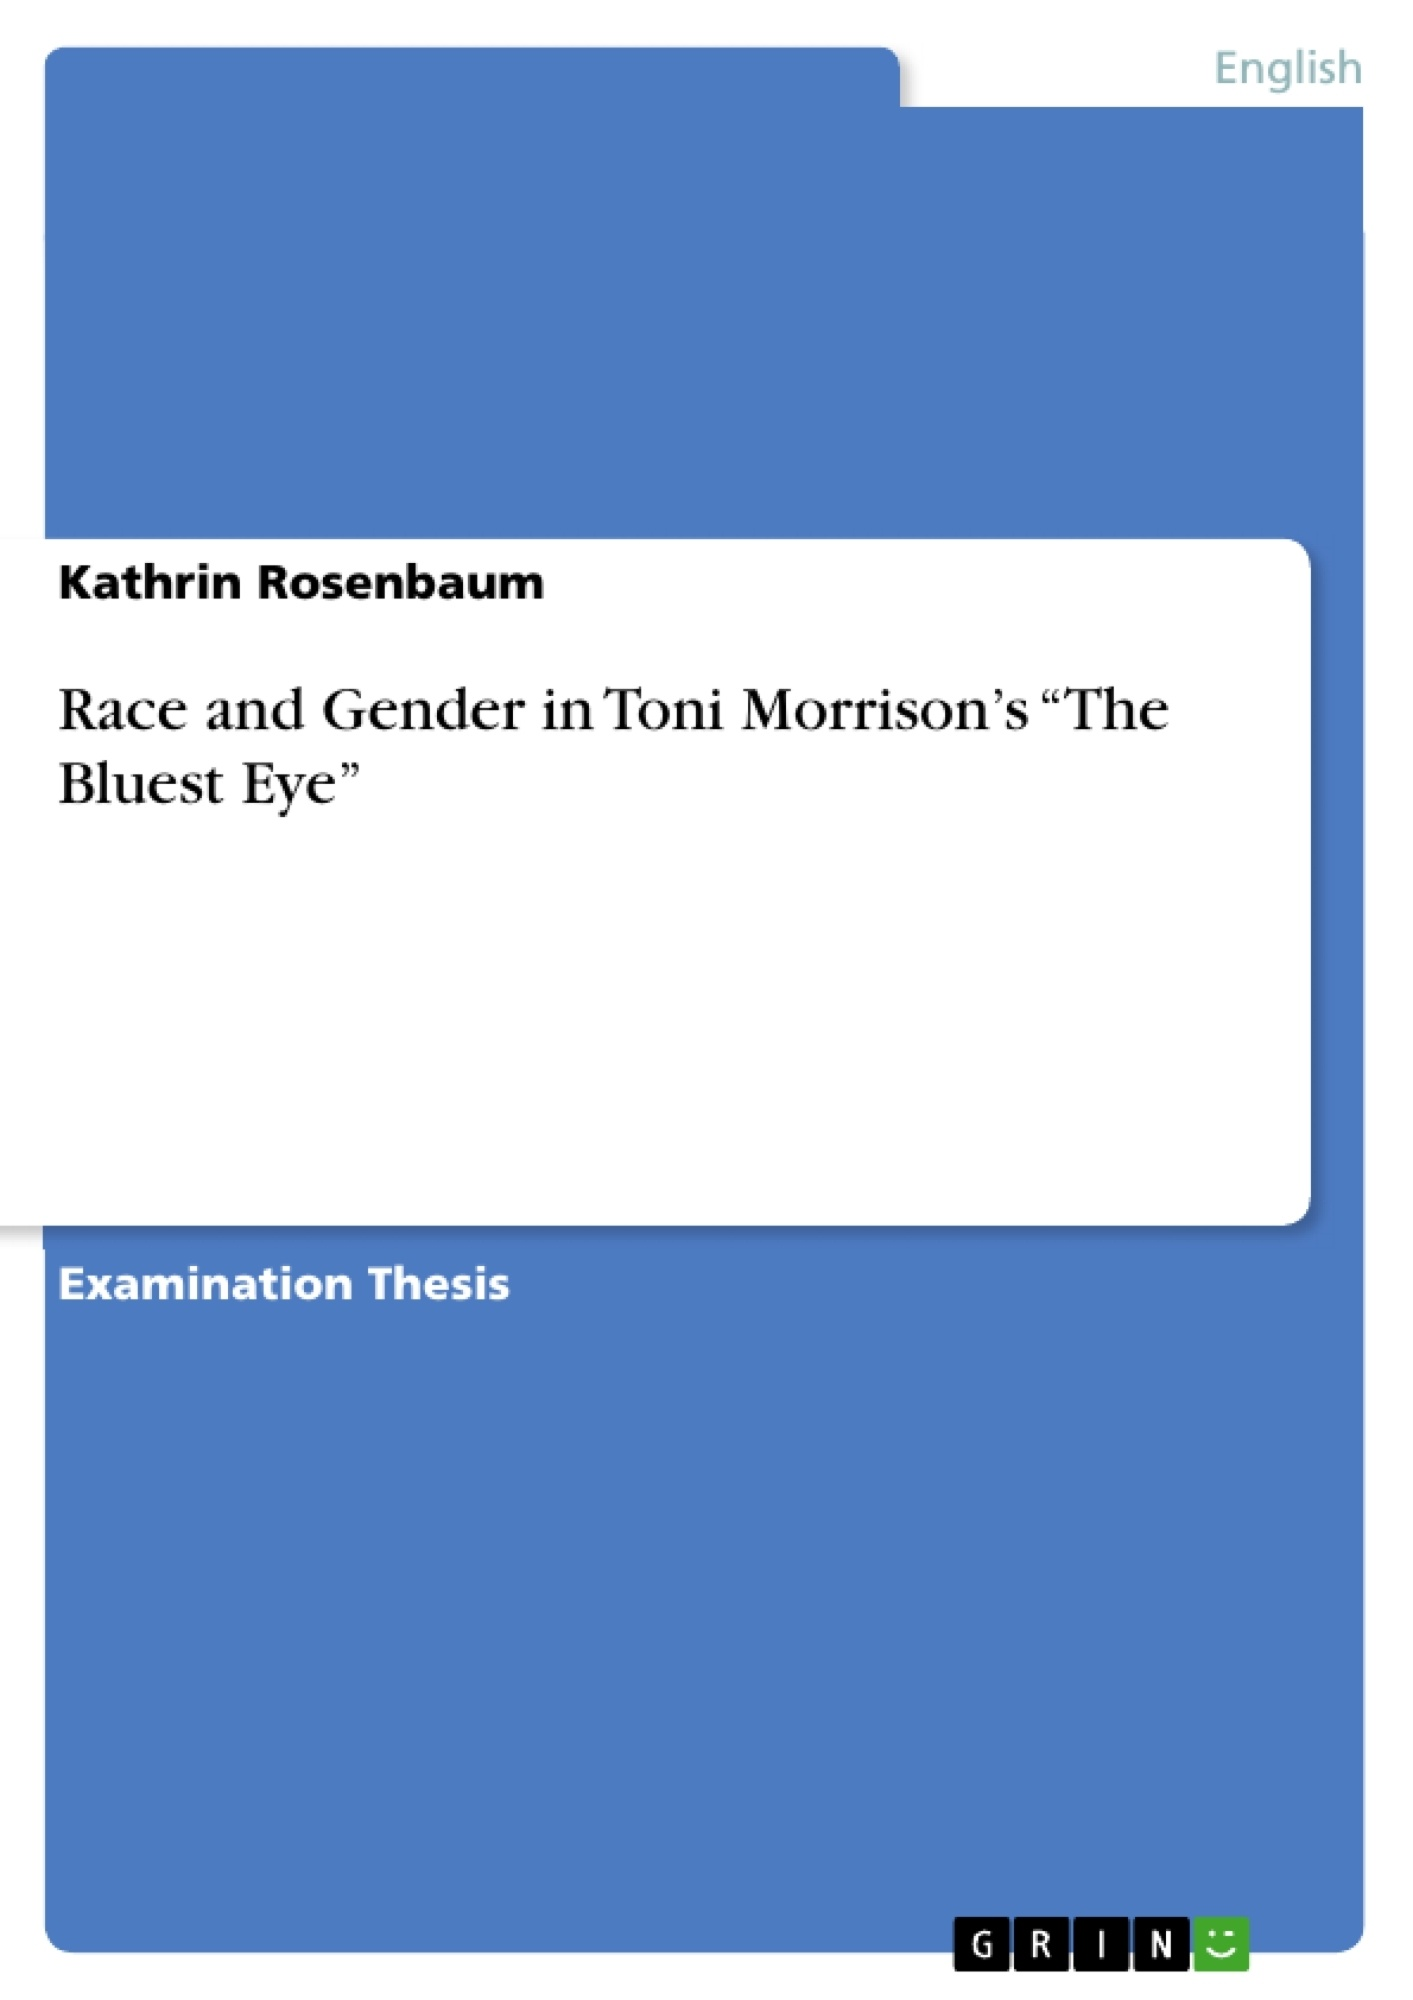 race and gender in toni morrison s the bluest eye publish your race and gender in toni morrison s the bluest eye publish your master s thesis bachelor s thesis essay or term paper